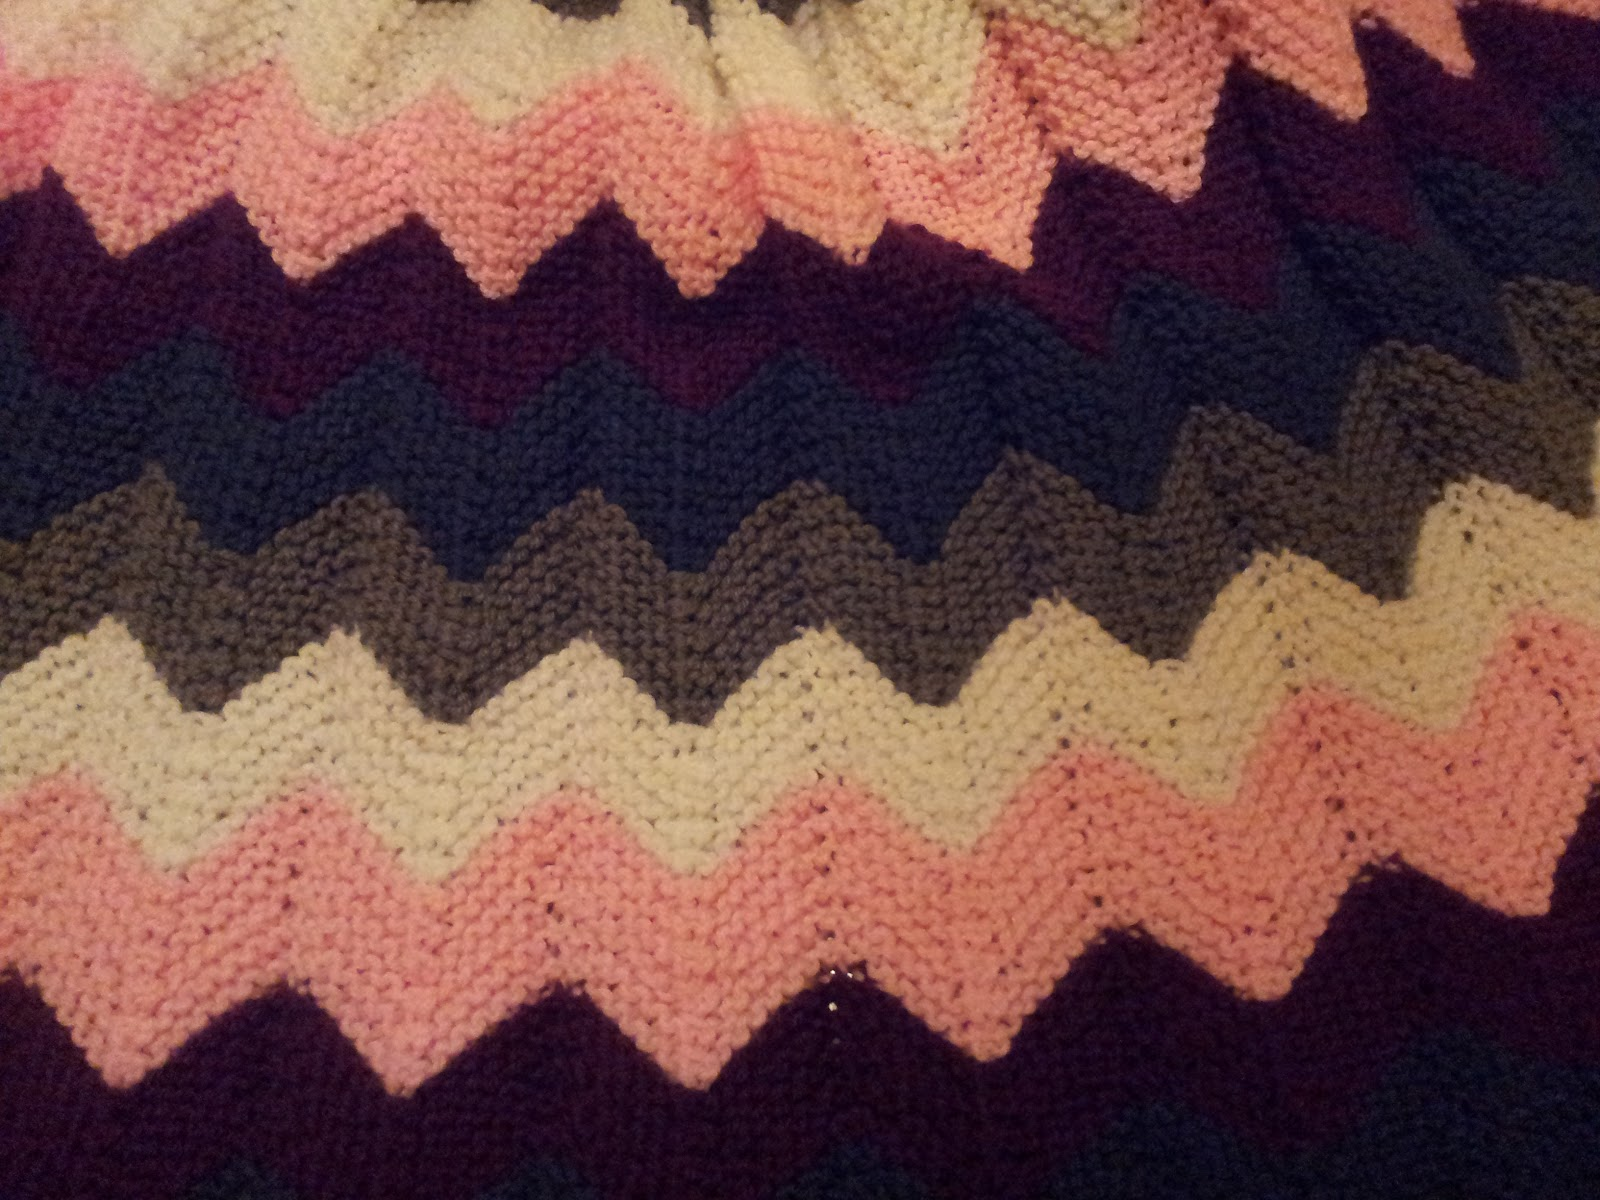 Mosier Farms: Knitted Chevron (ripple) Afghan